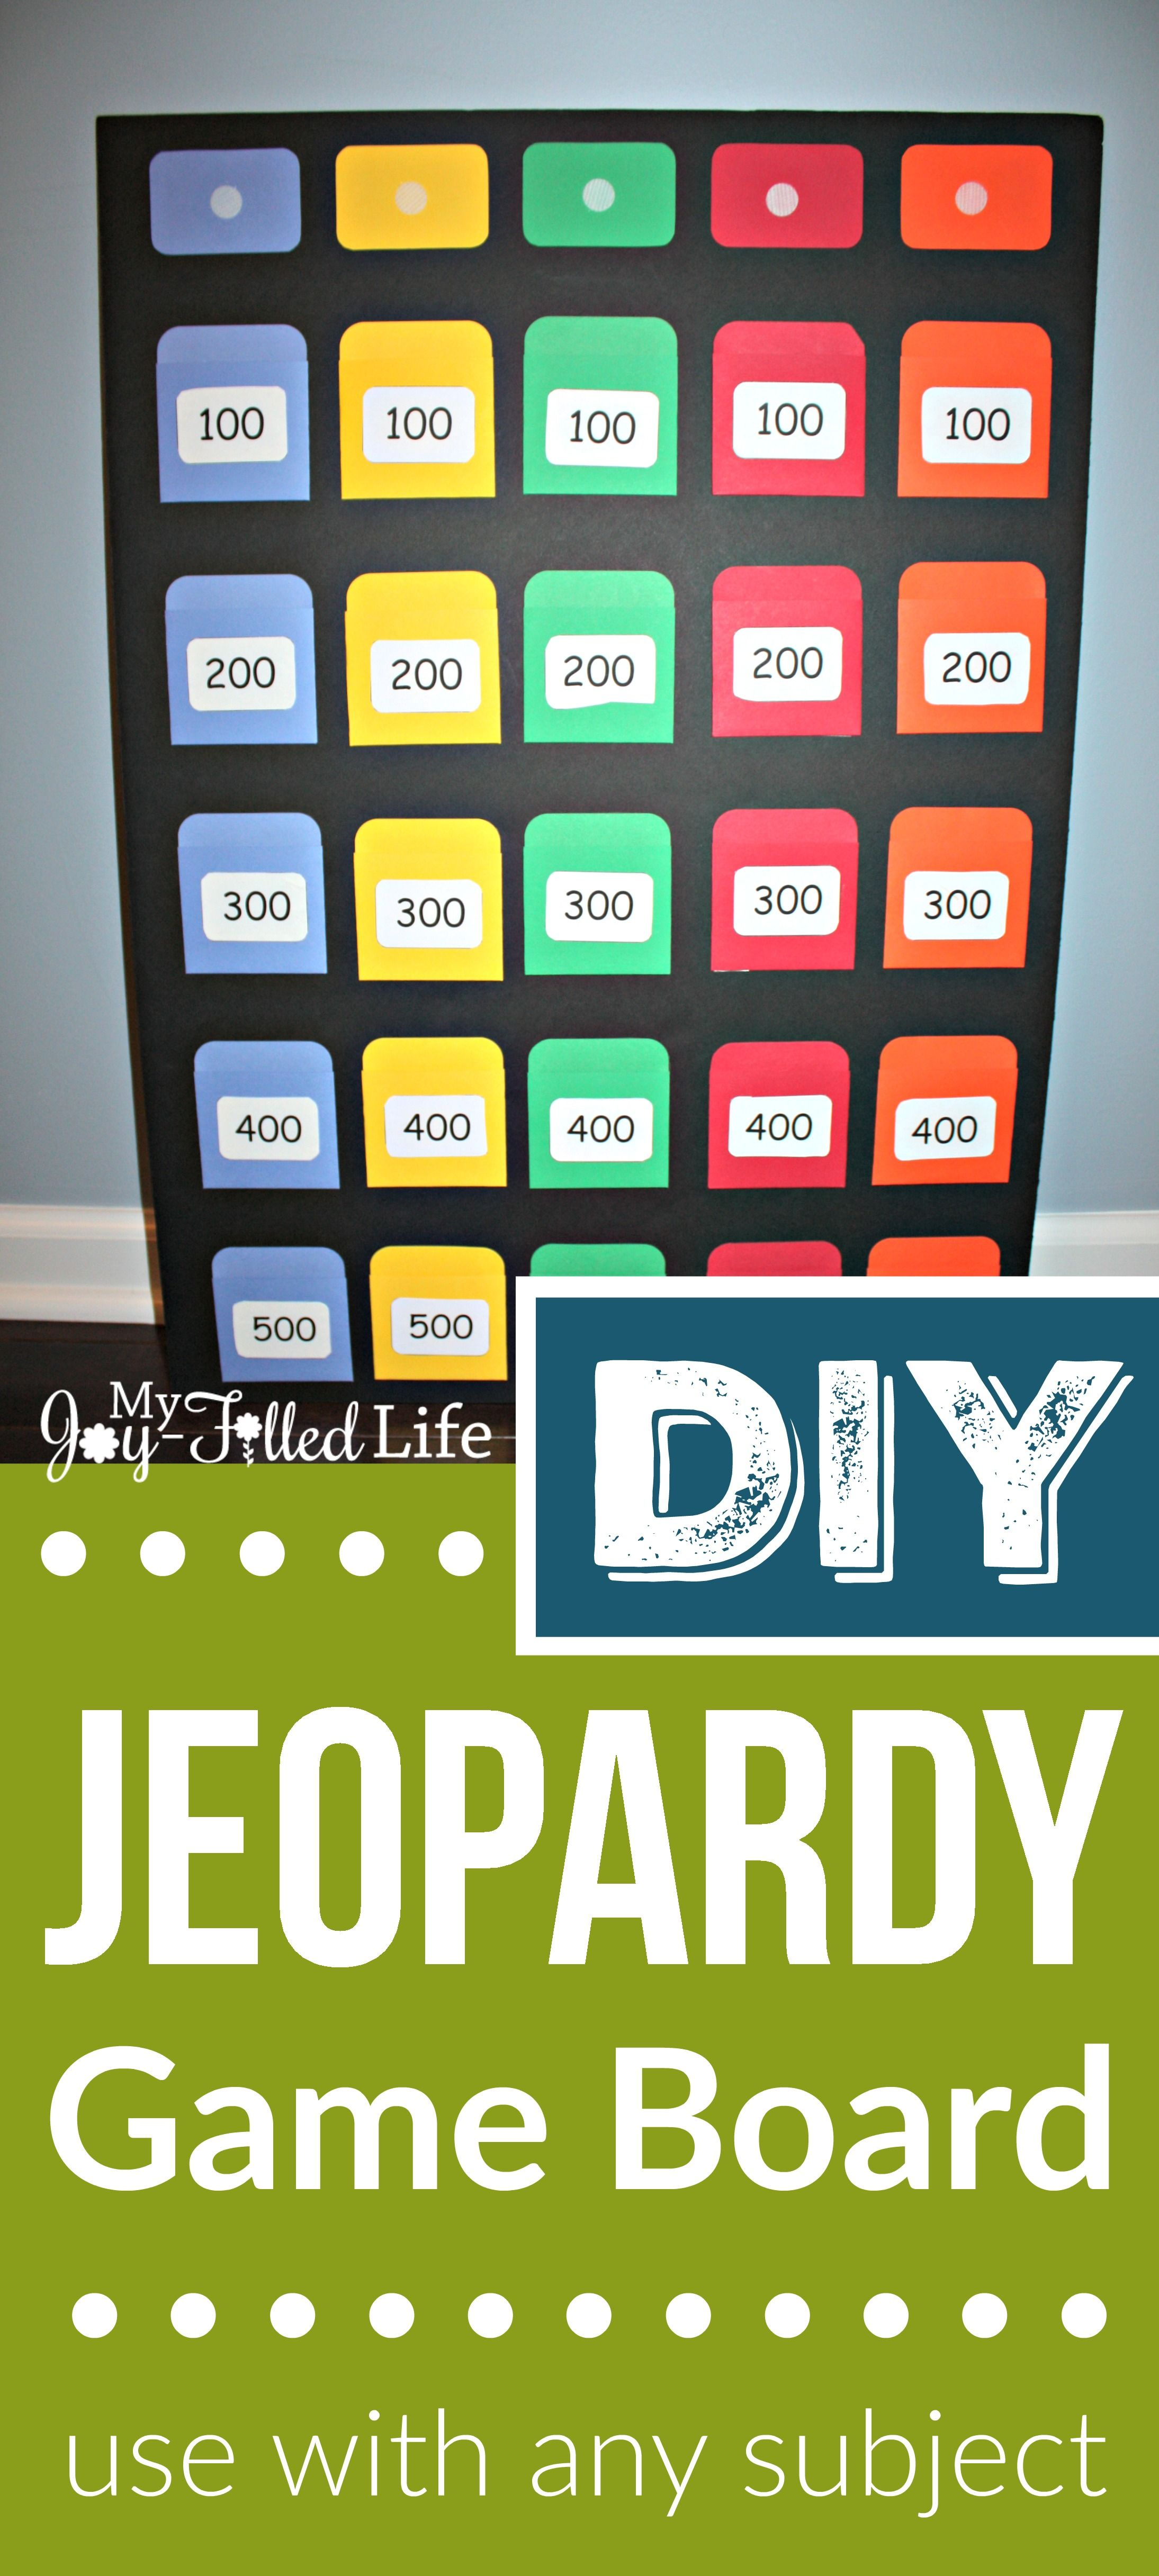 DIY Jeopardy Game Board | More Game boards, Gaming and Board ideas